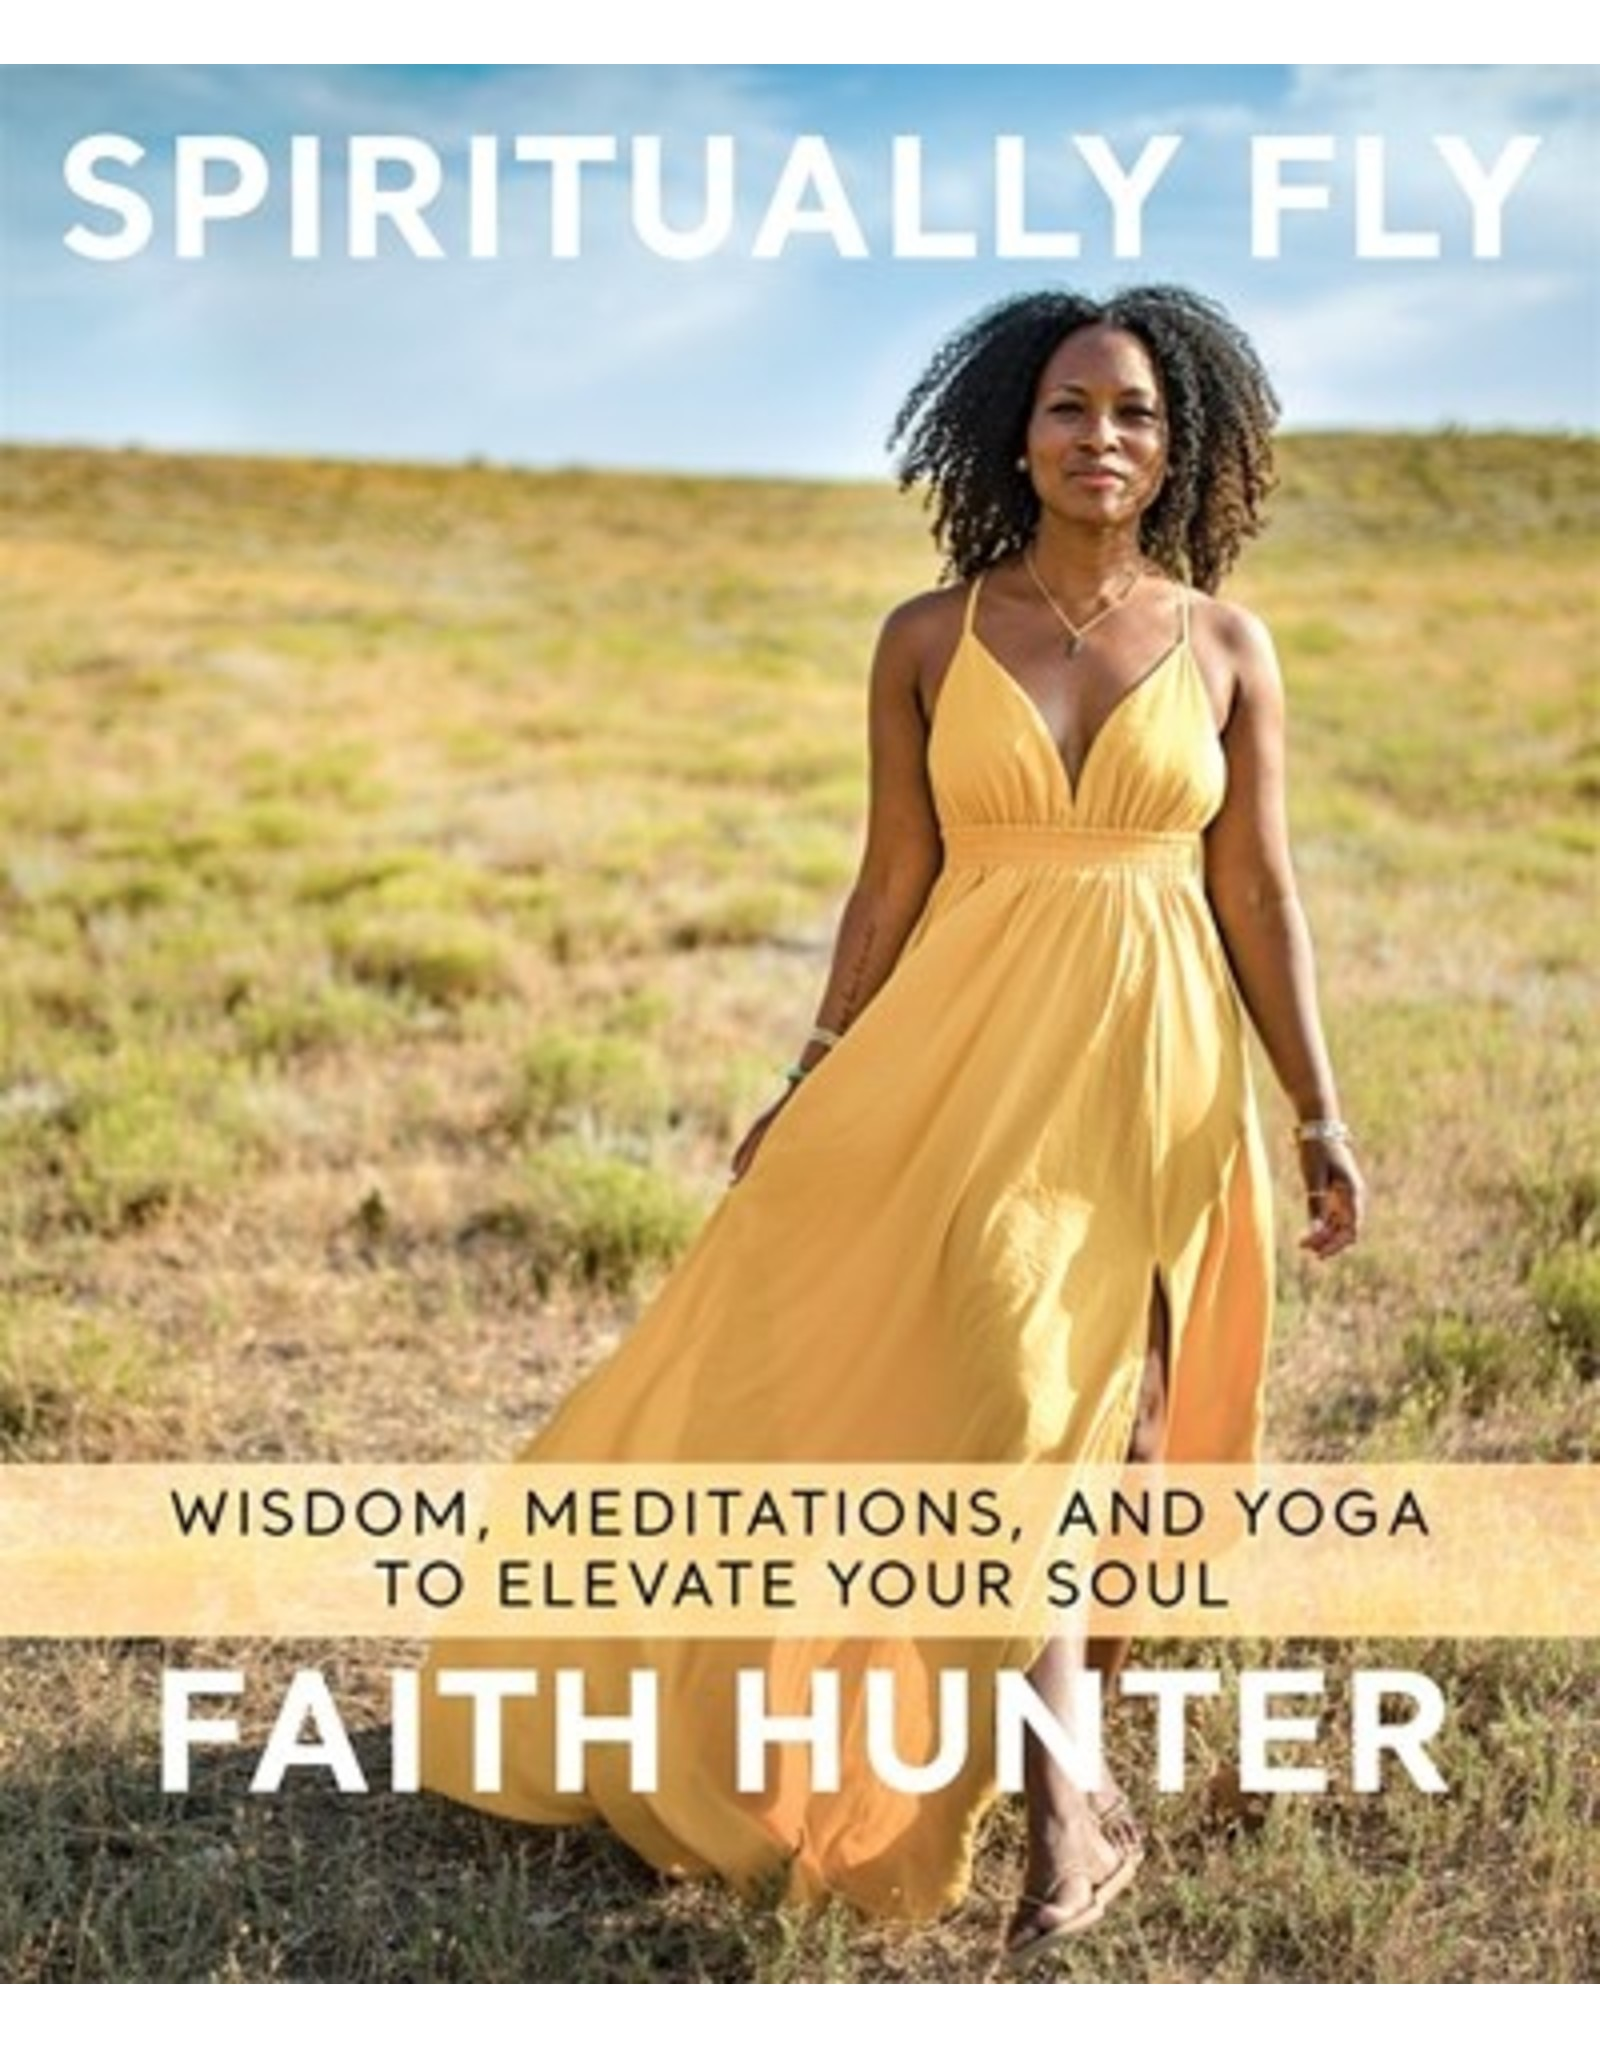 Books Spiritually Fly: Wisdom, Meditations and Yoga to Elevate Your Soul by Faith Hunter